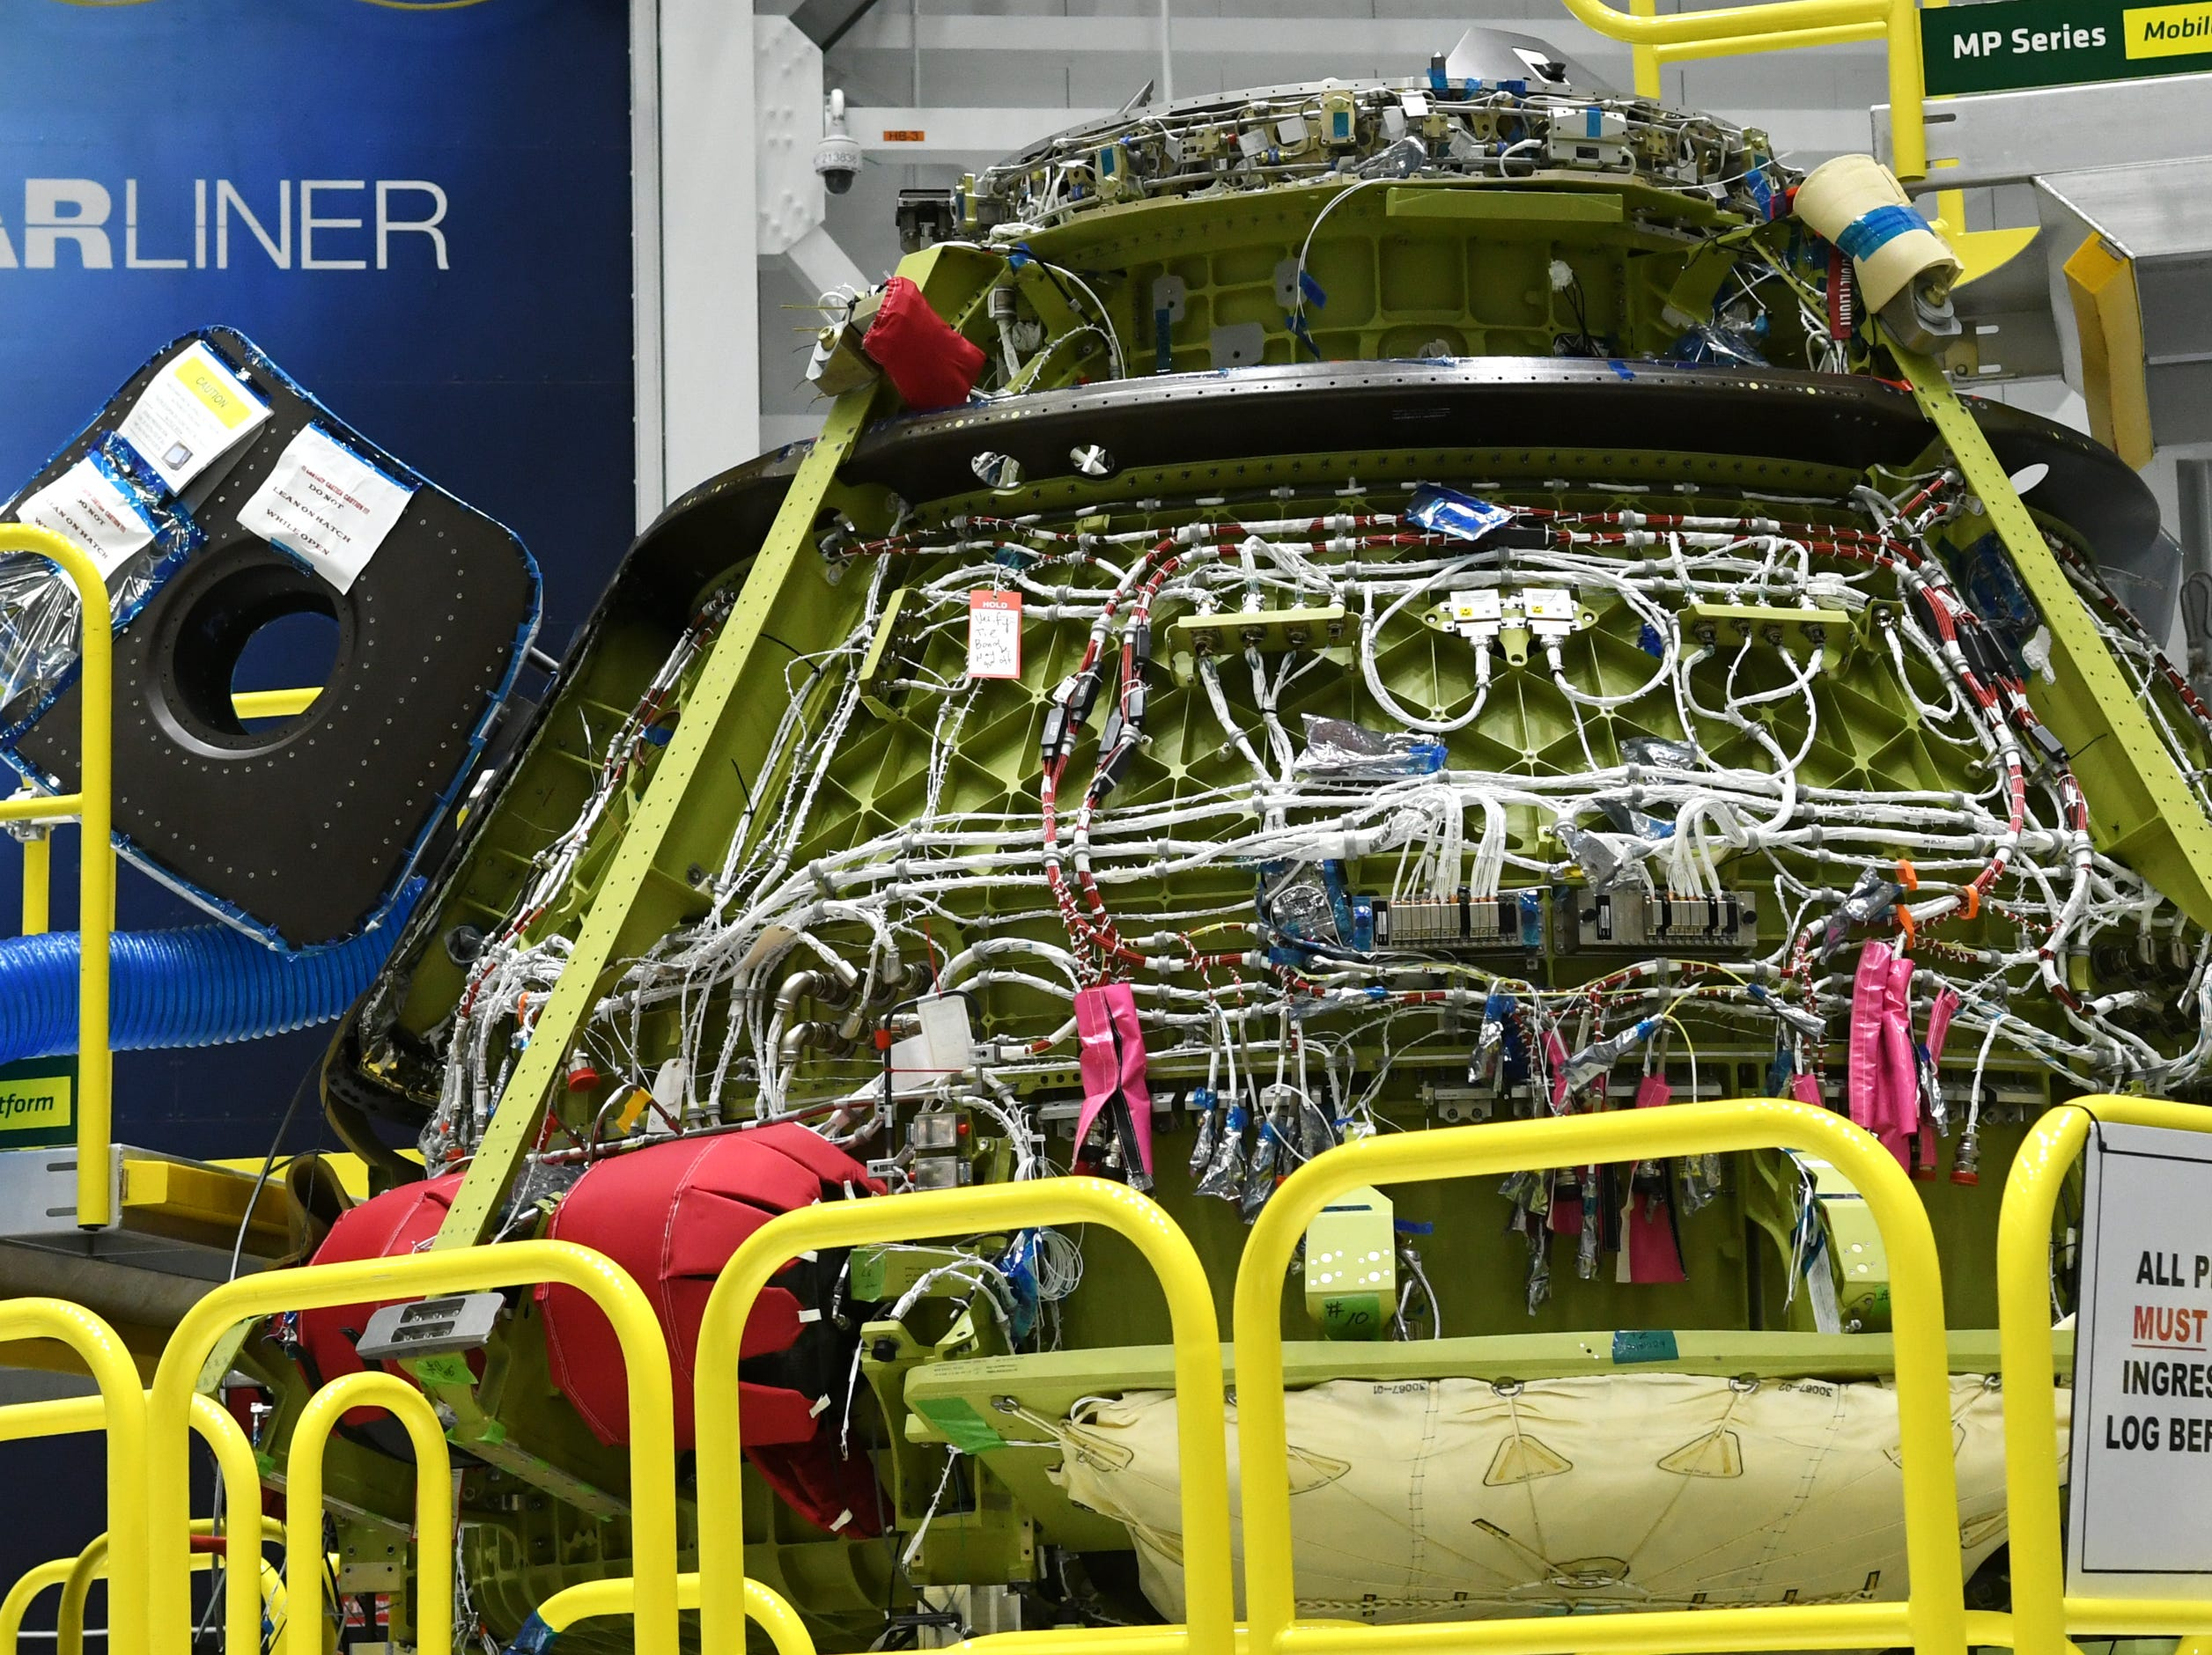 The Starliner crew test vehicle sits on its stand in the Boeing manufacturing facility at Kennedy Space Center.